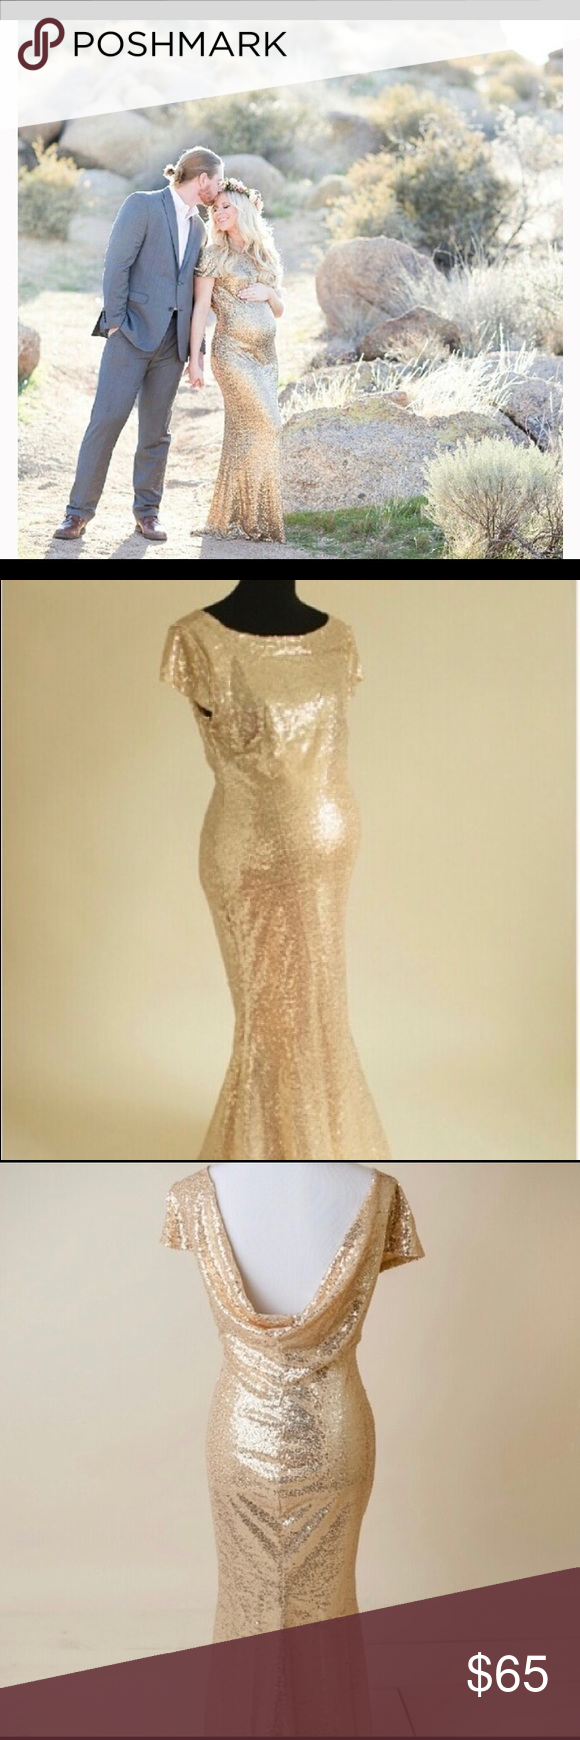 Xs gold sequin maternity gown dress pinterest maternity gowns